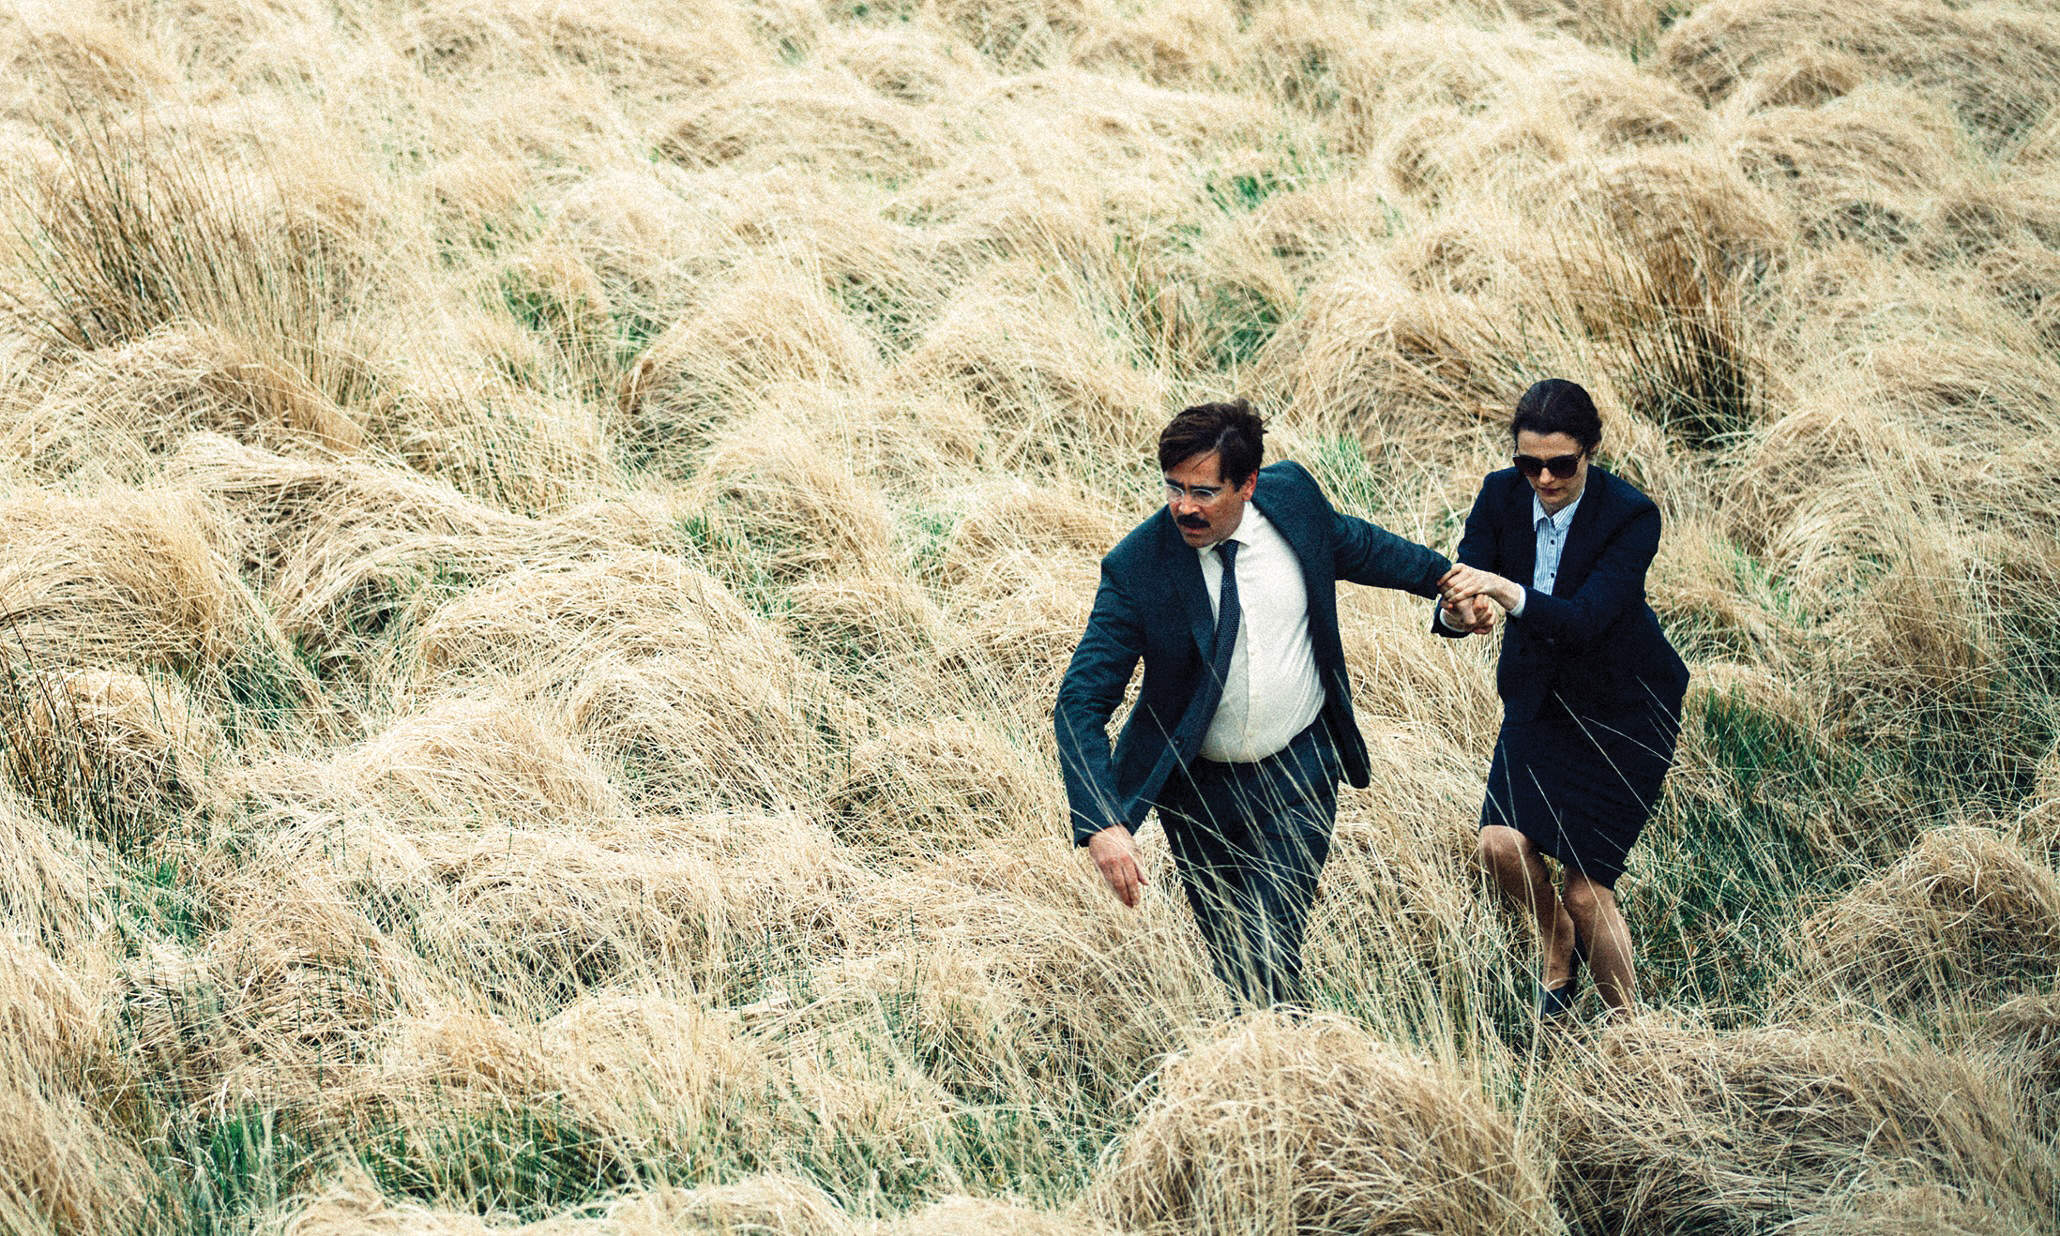 Loving the crustacean: an unstable fantasy in dating dystopia The Lobster